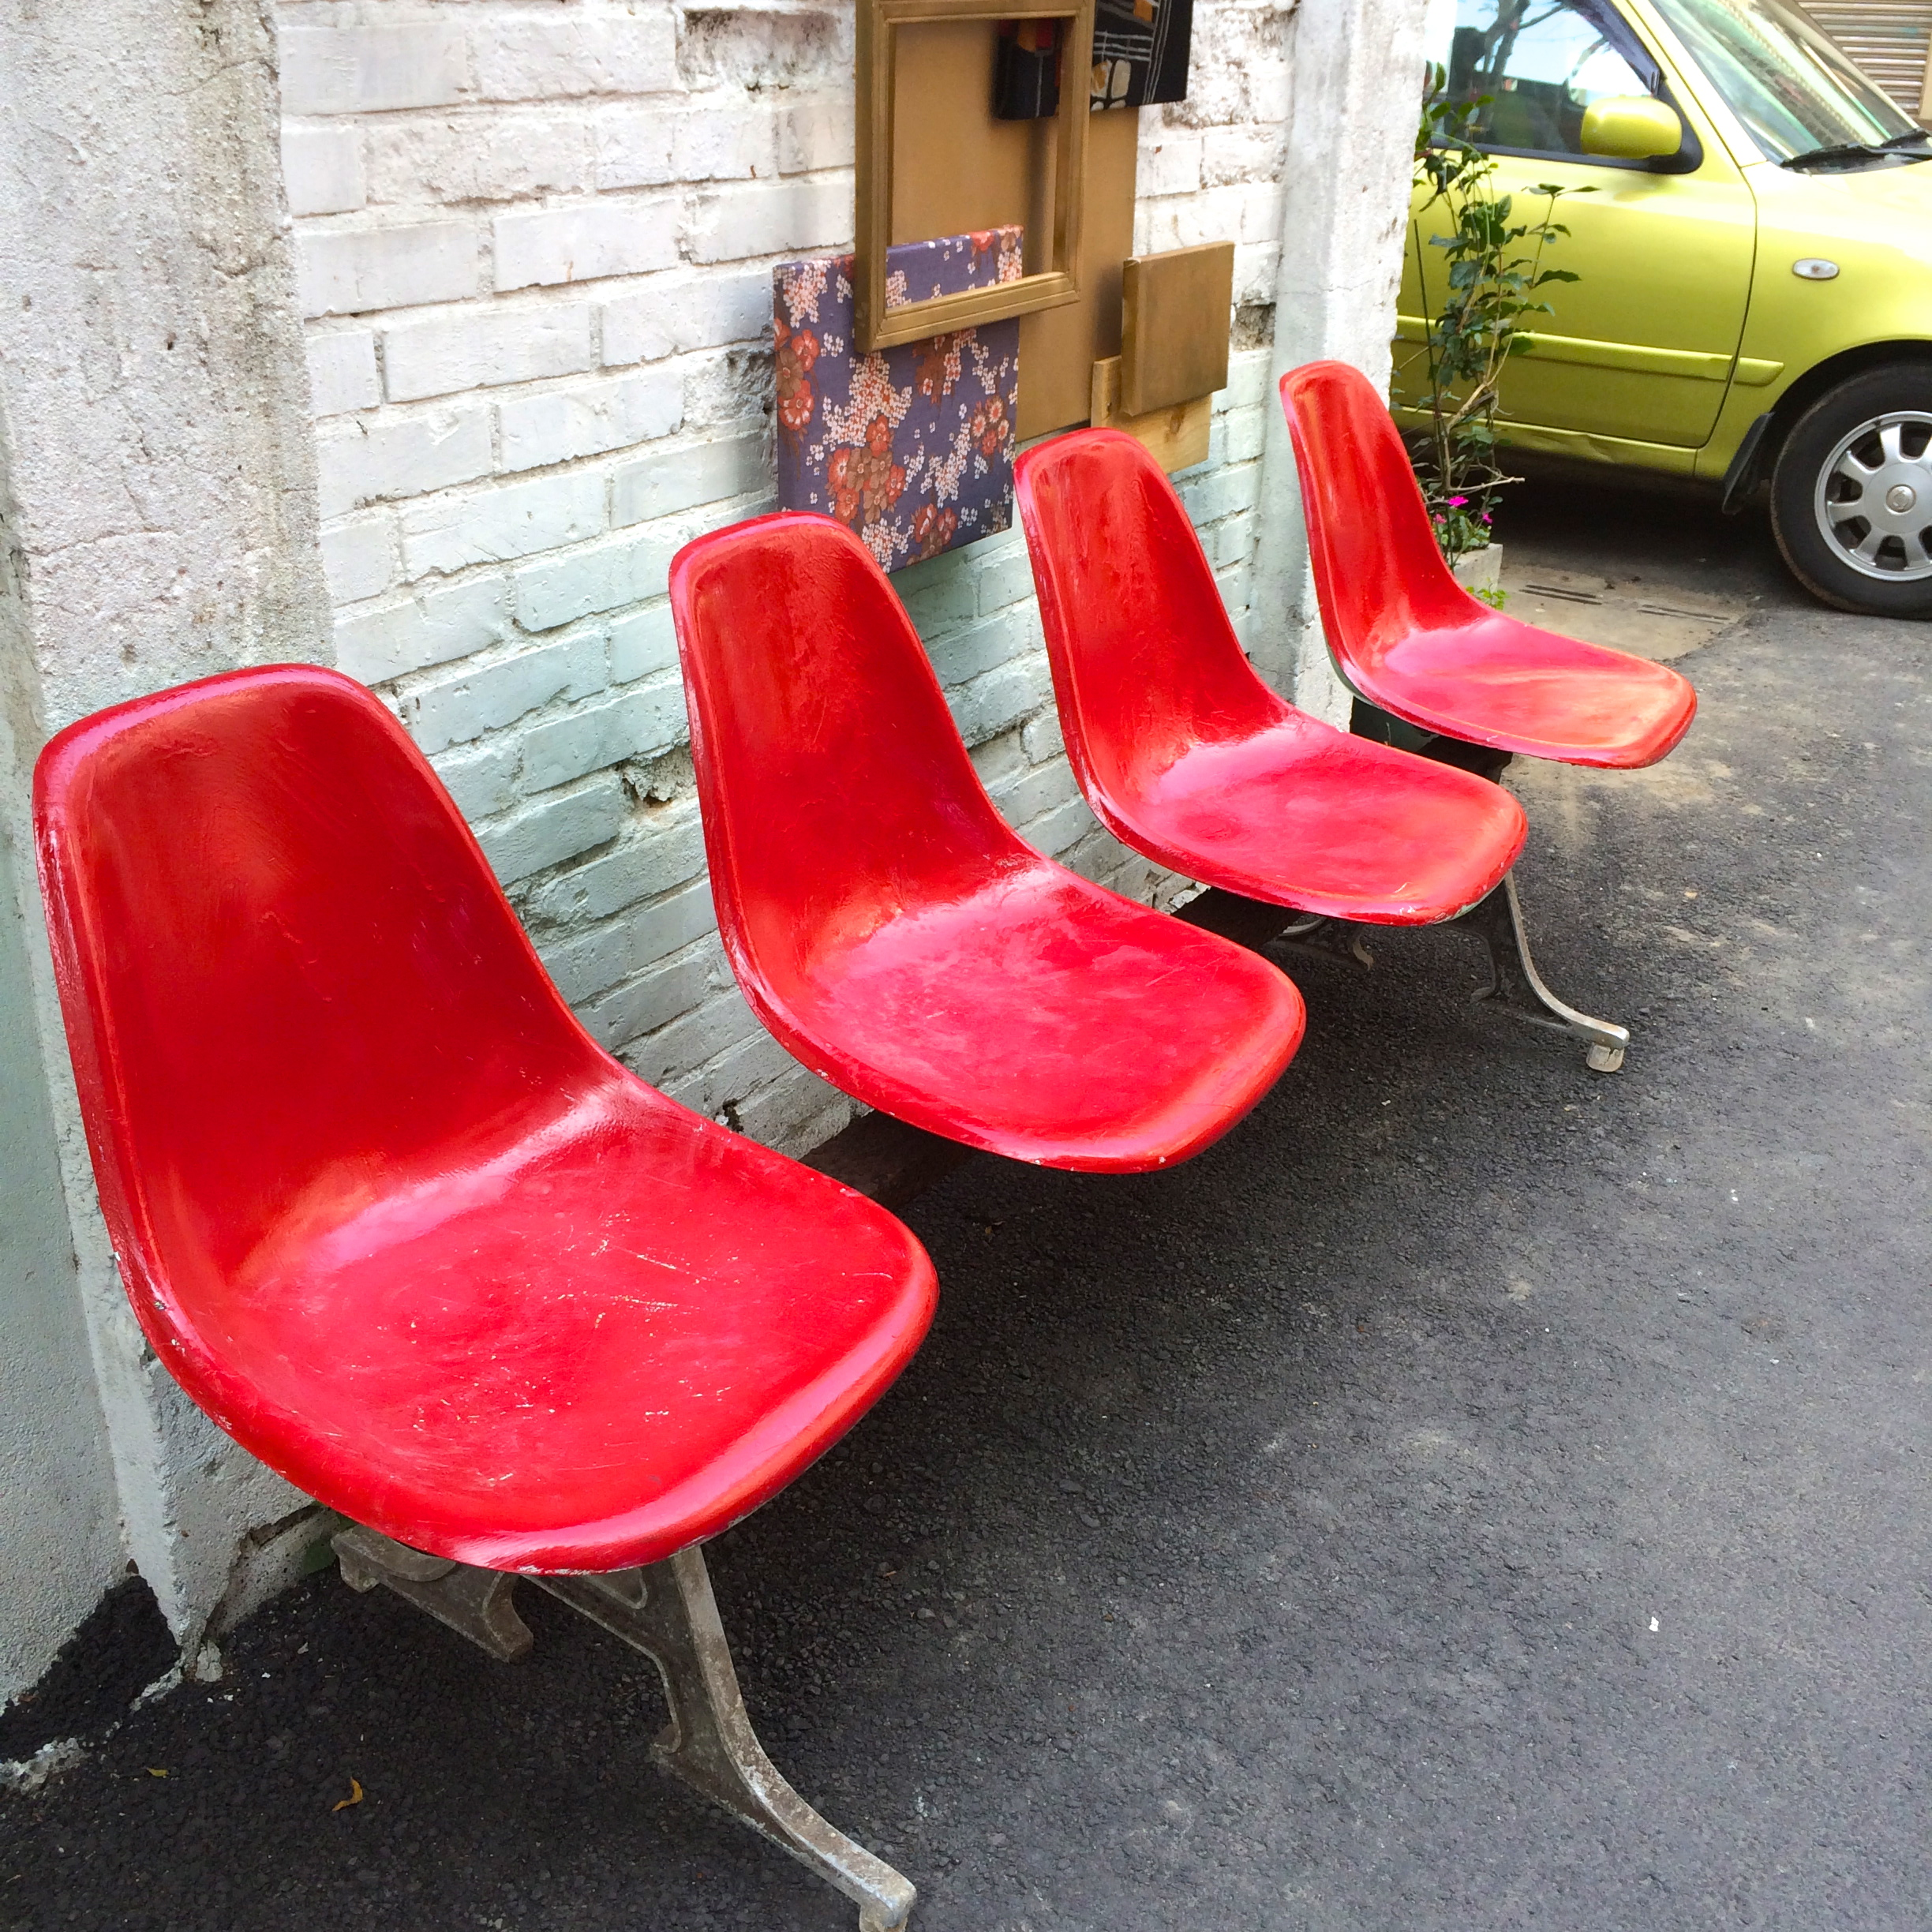 red-chairs-fantasystory